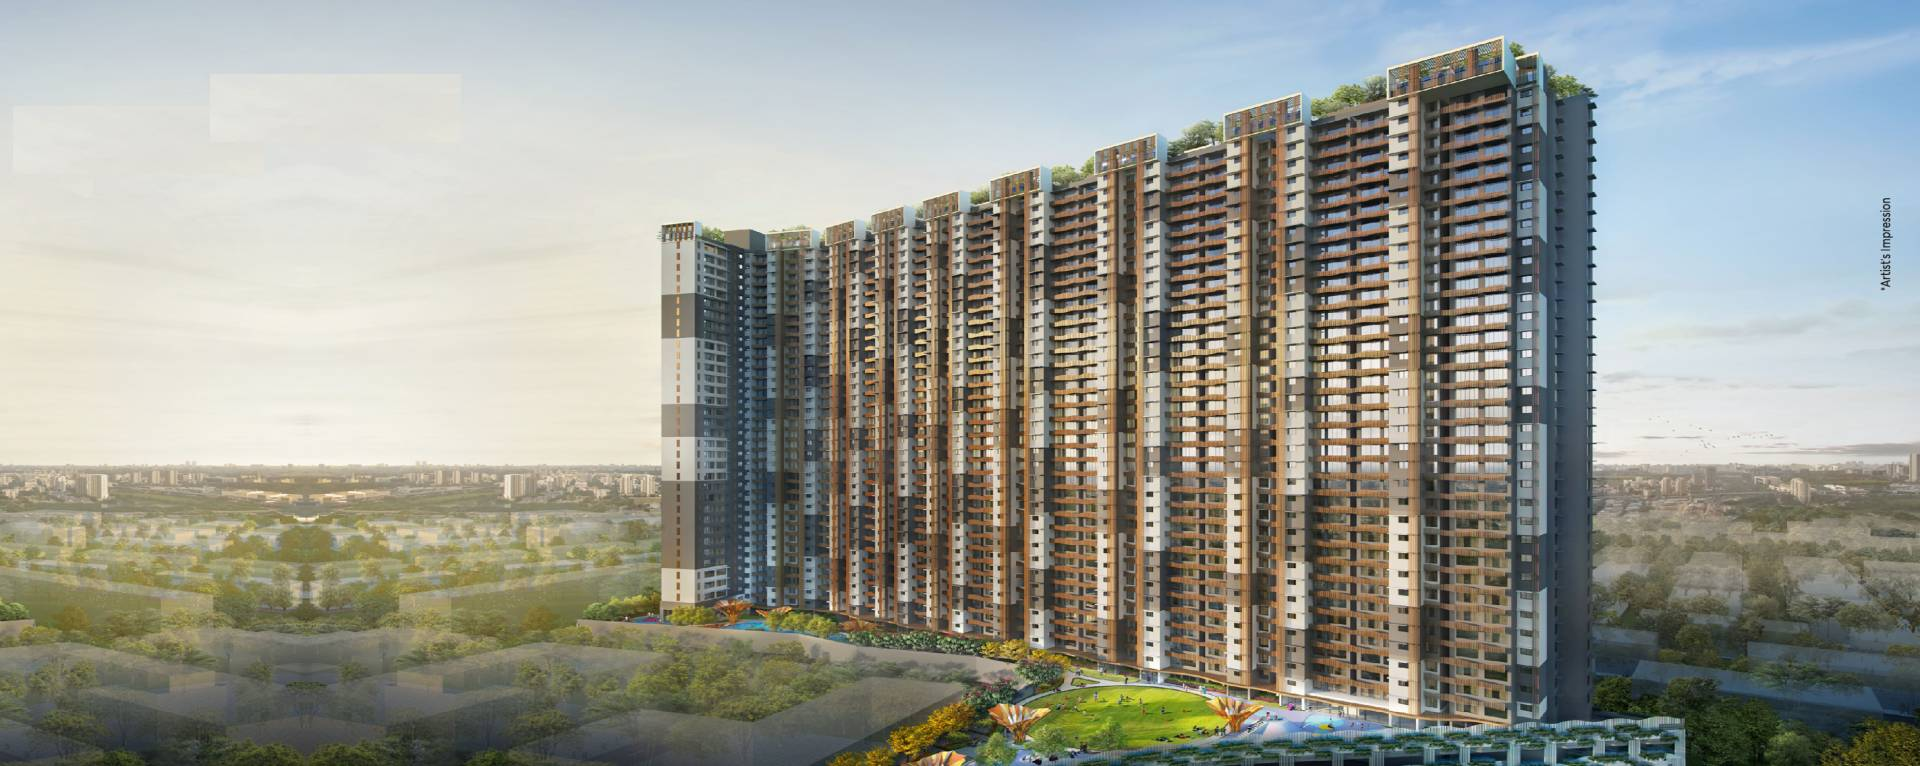 Park Aspiria By Chandak Group - Goregaon West, Mumbai | No Brokerage | World Class Amenities | 2 BHK Flats | 2 BHK Jodi Flats | 3 BHK Flats